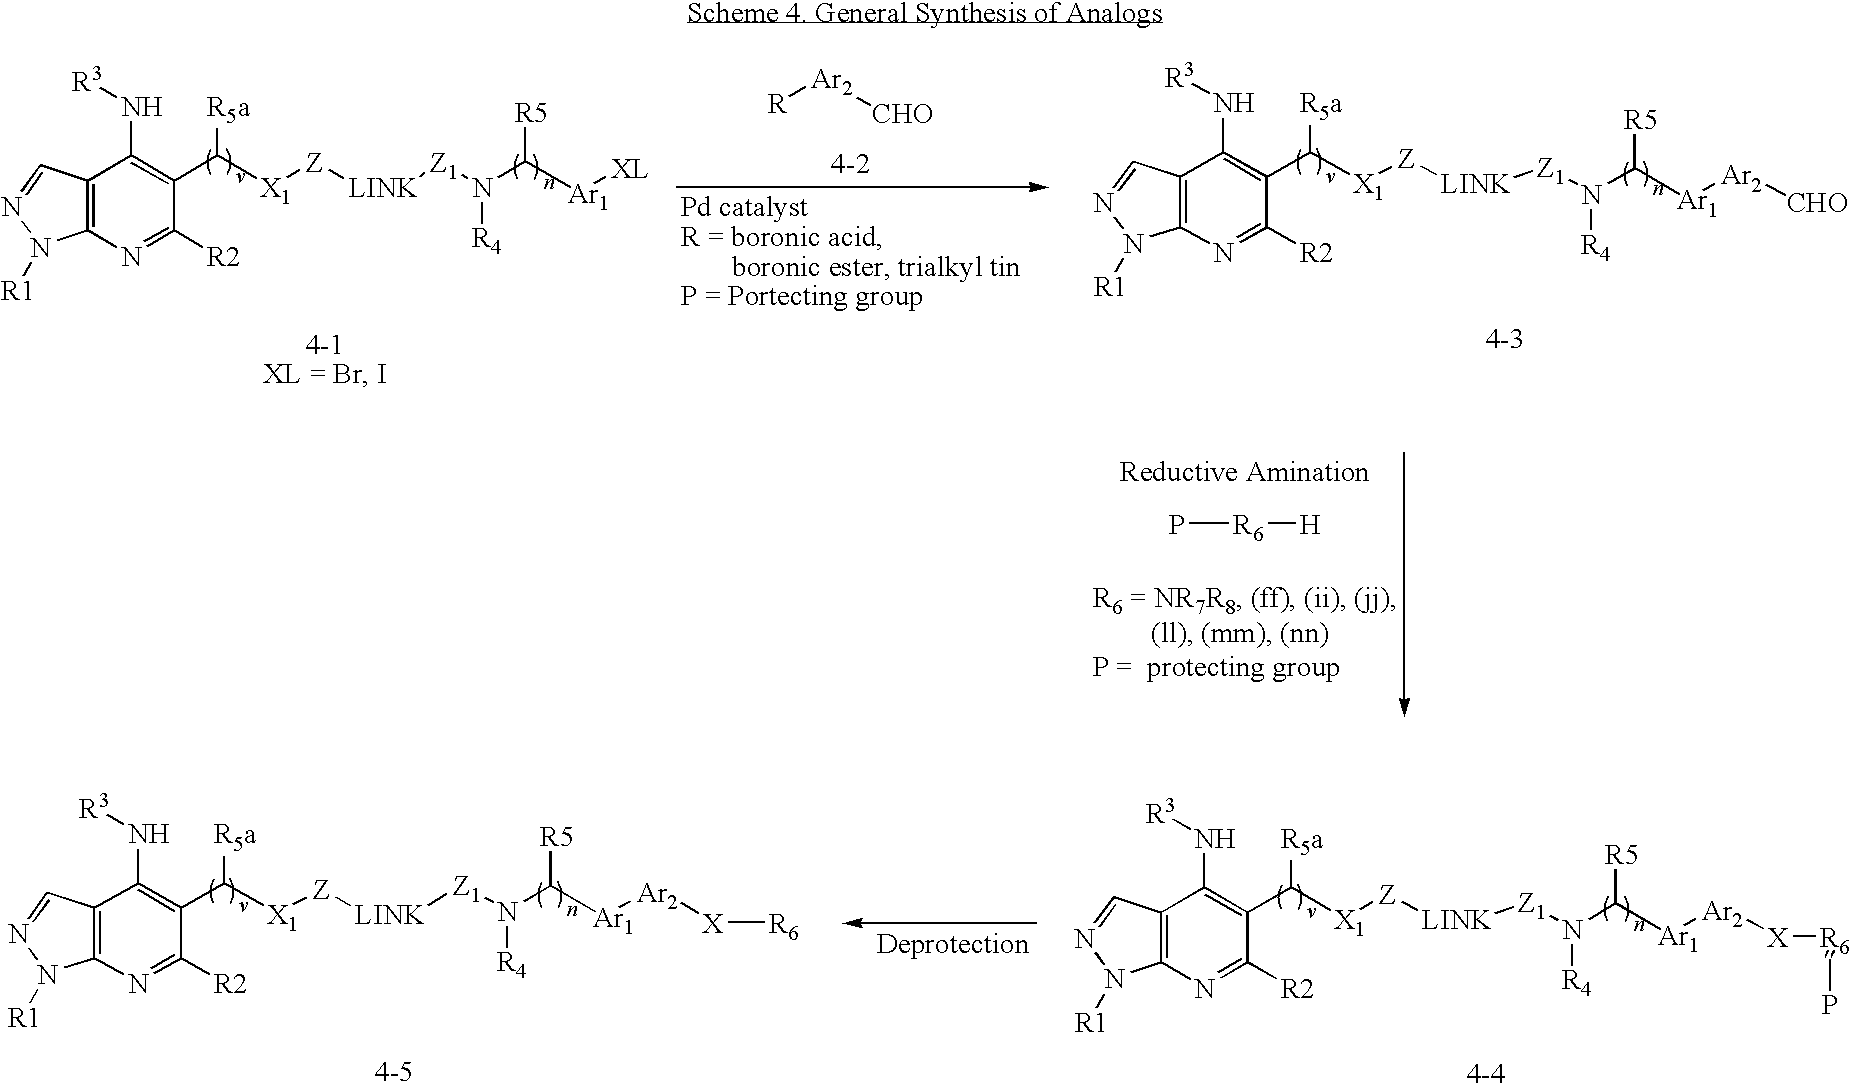 US20090197871A1 - Dual Pharmacophores - PDE4-Muscarinic